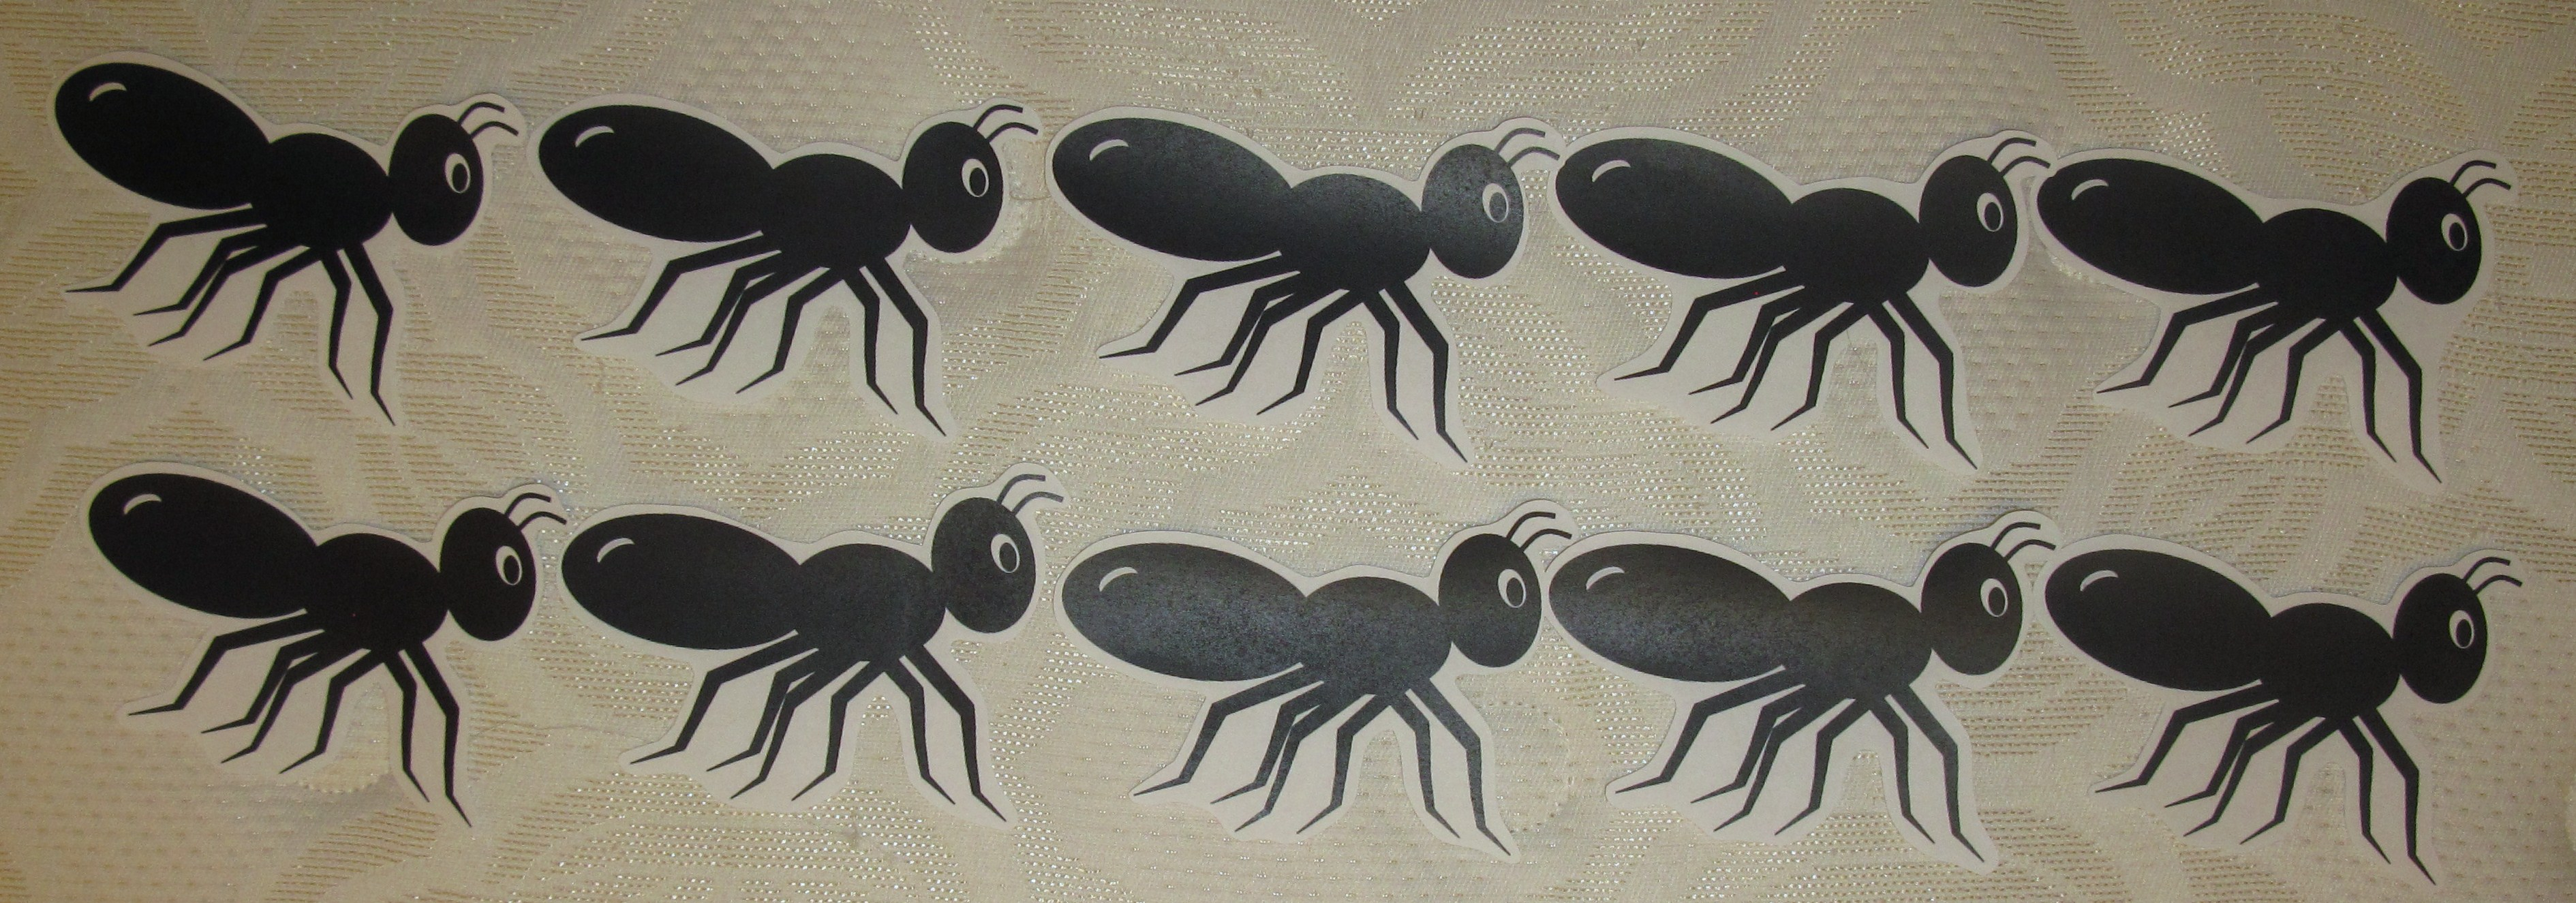 the ants come marching u2026oh crap the return of the modern philosopher